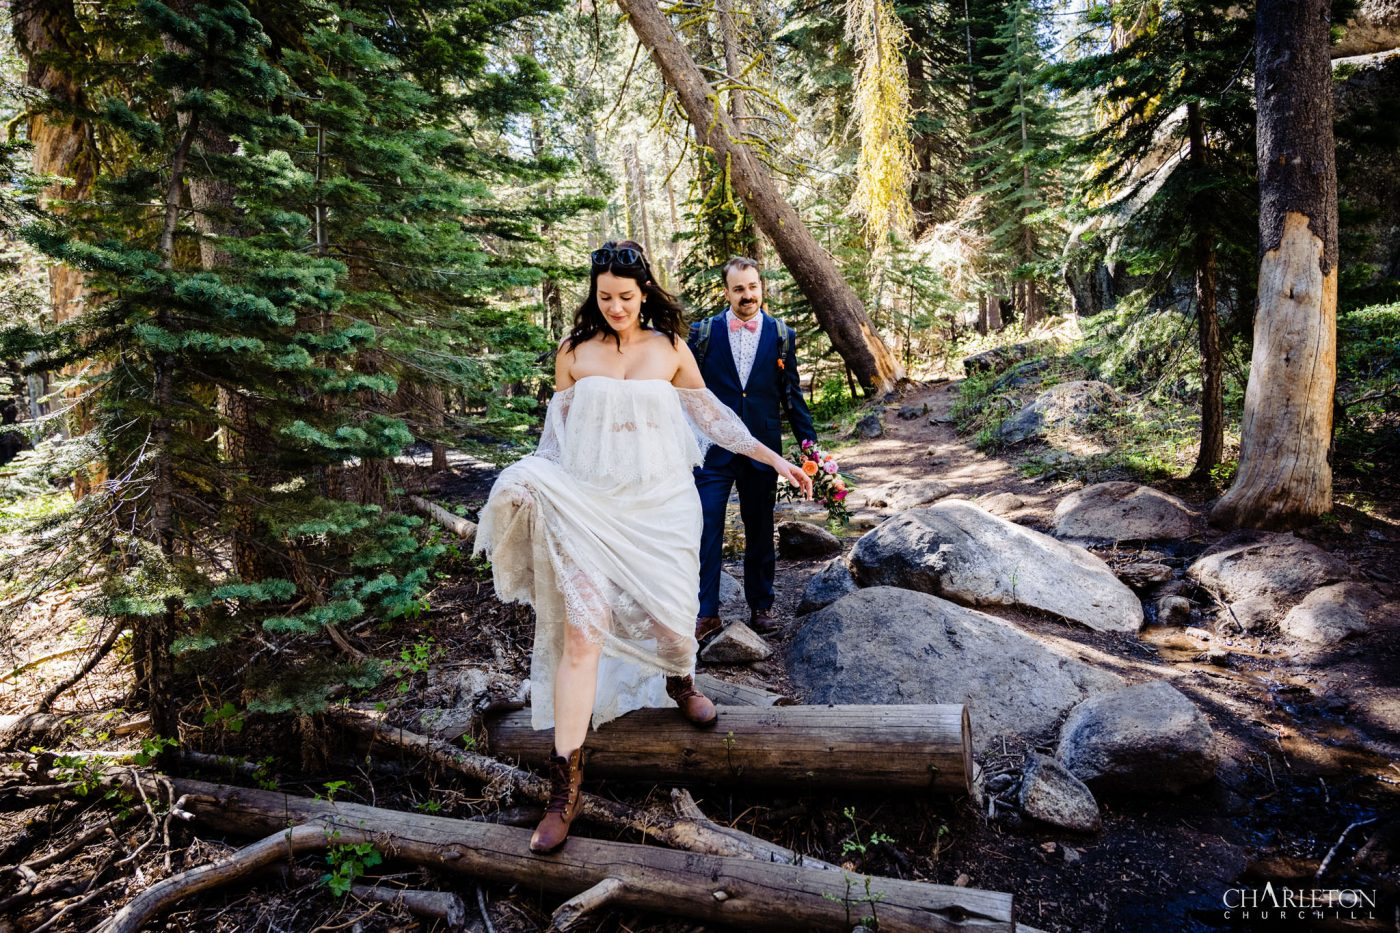 hiking wedding couple adventuring in the National Park Yosemite